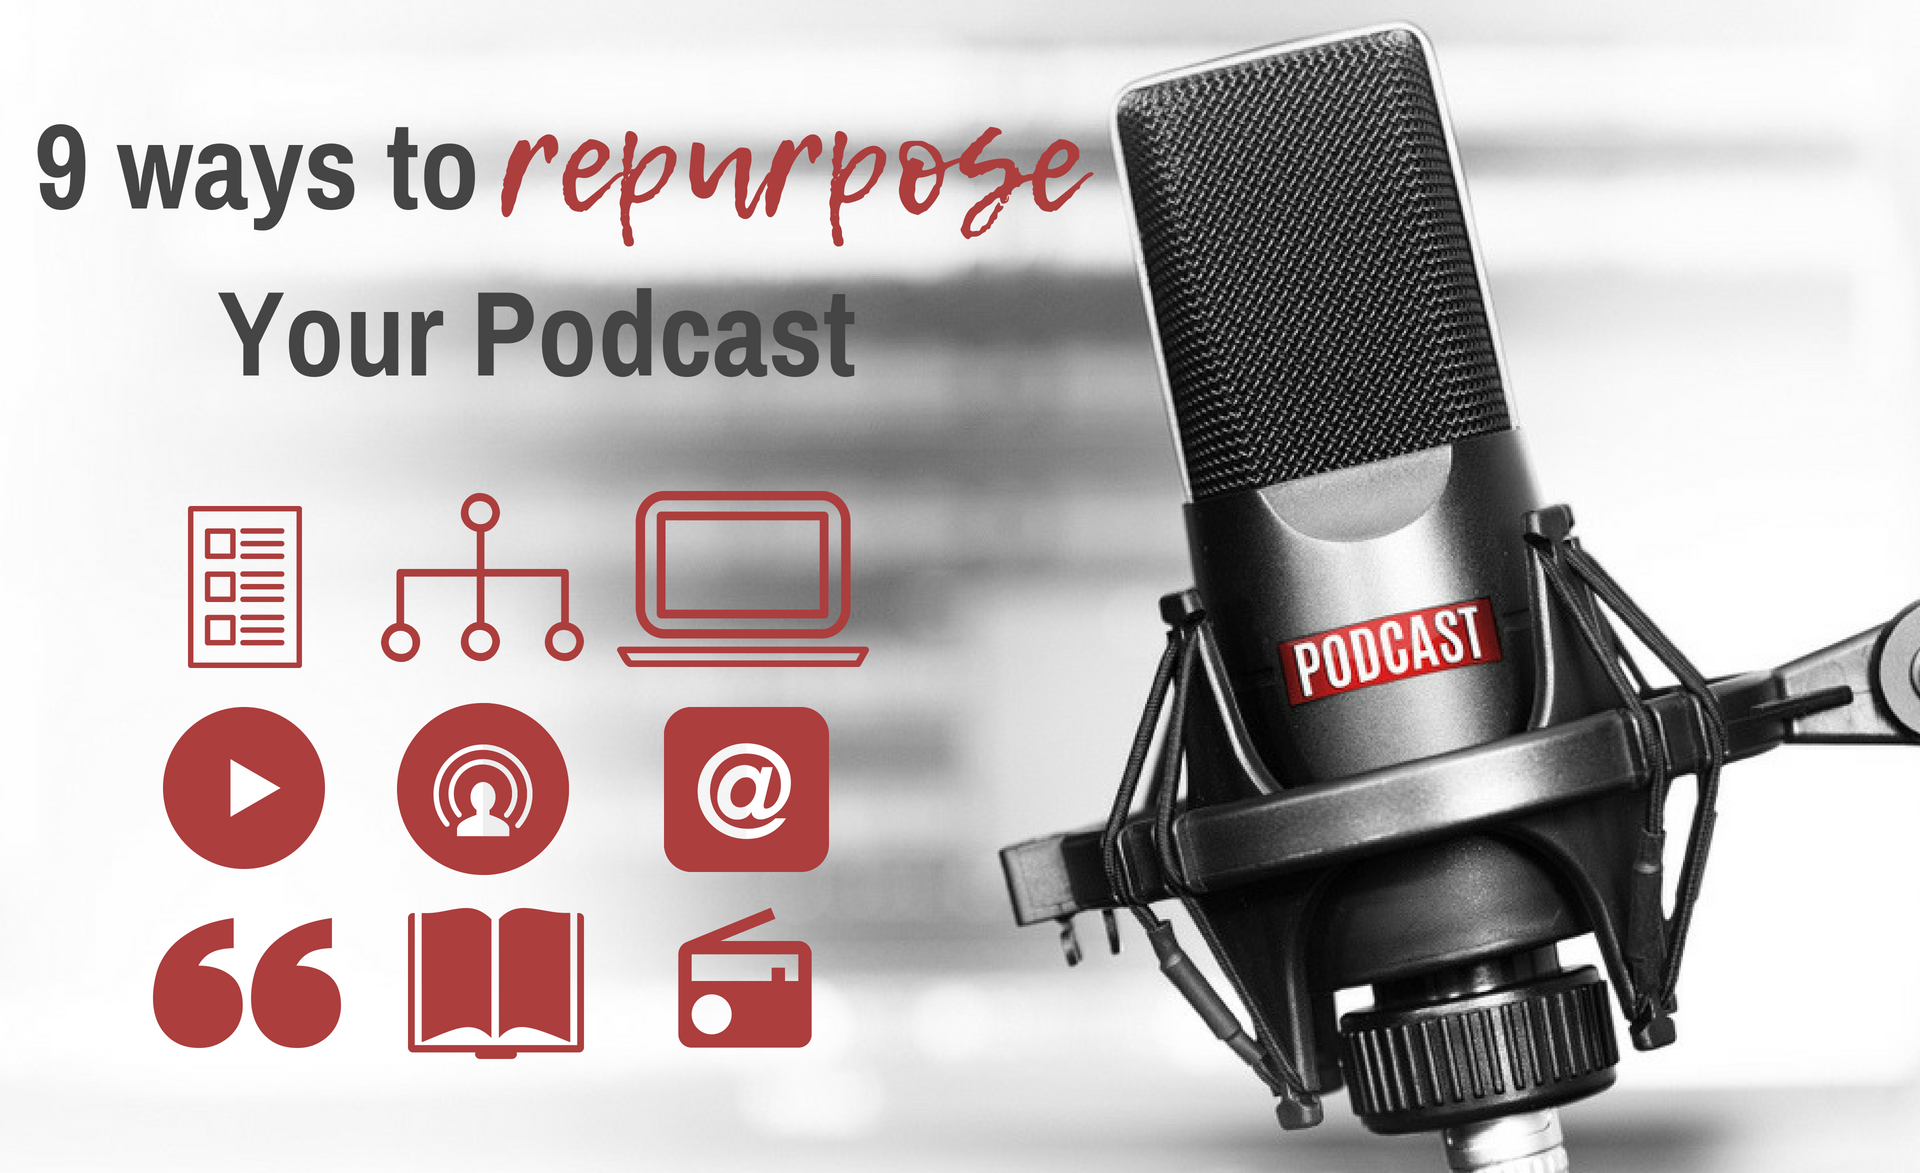 9 Ways to Repurpose Your Podcast